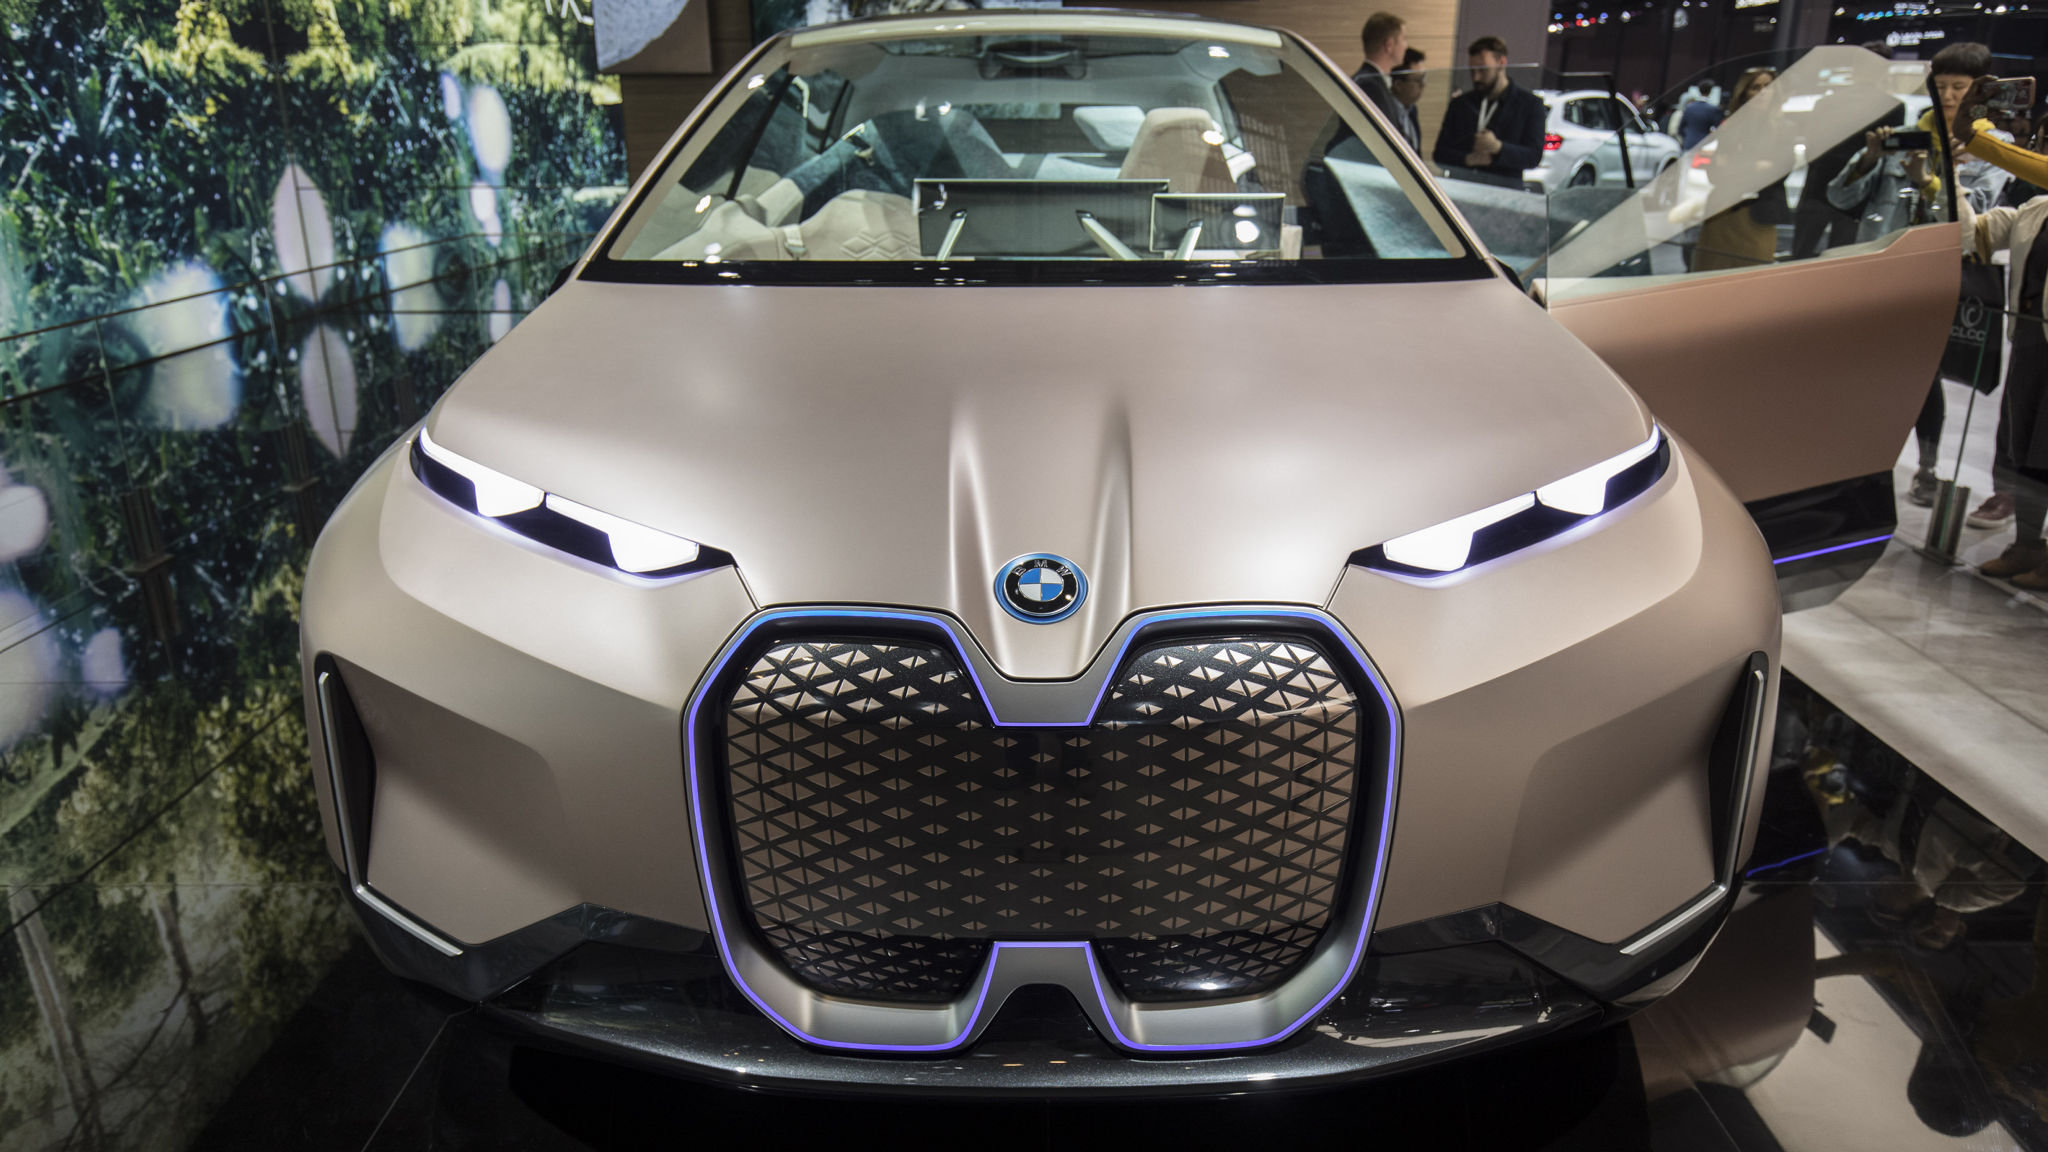 Bmw Accelerates Rollout Of Electric Cars To Catch Up With Rivals Financial Times